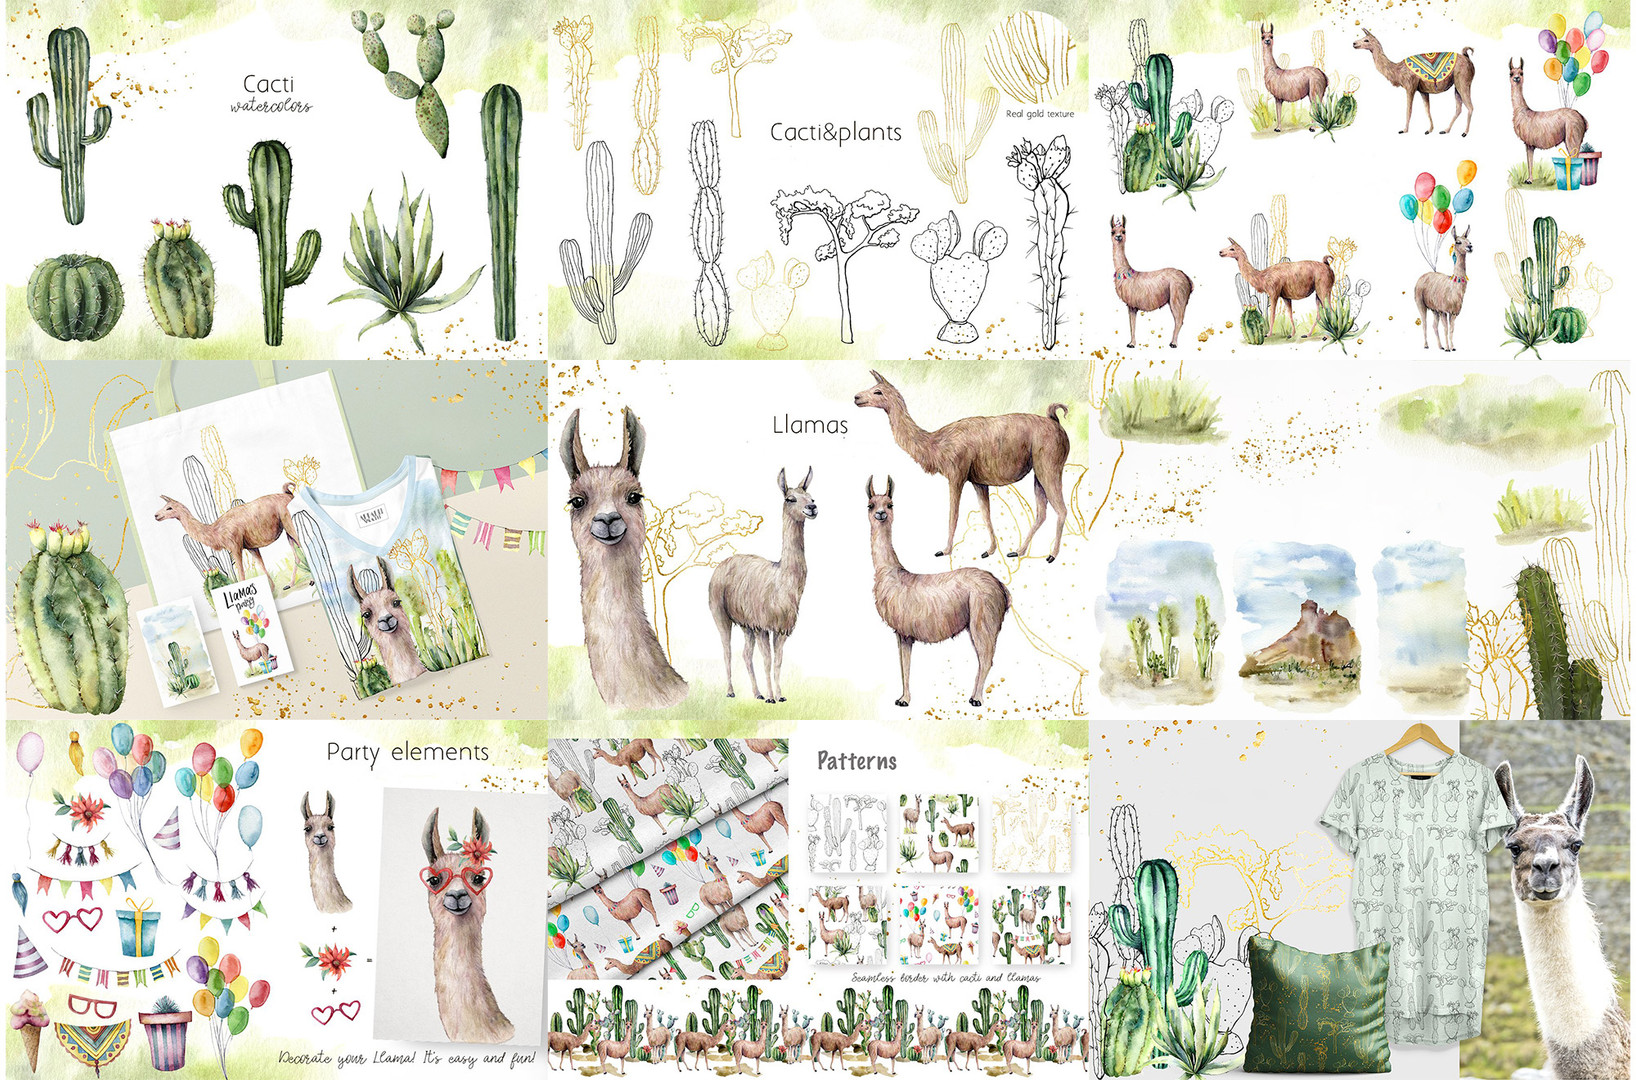 cacti-llama collection